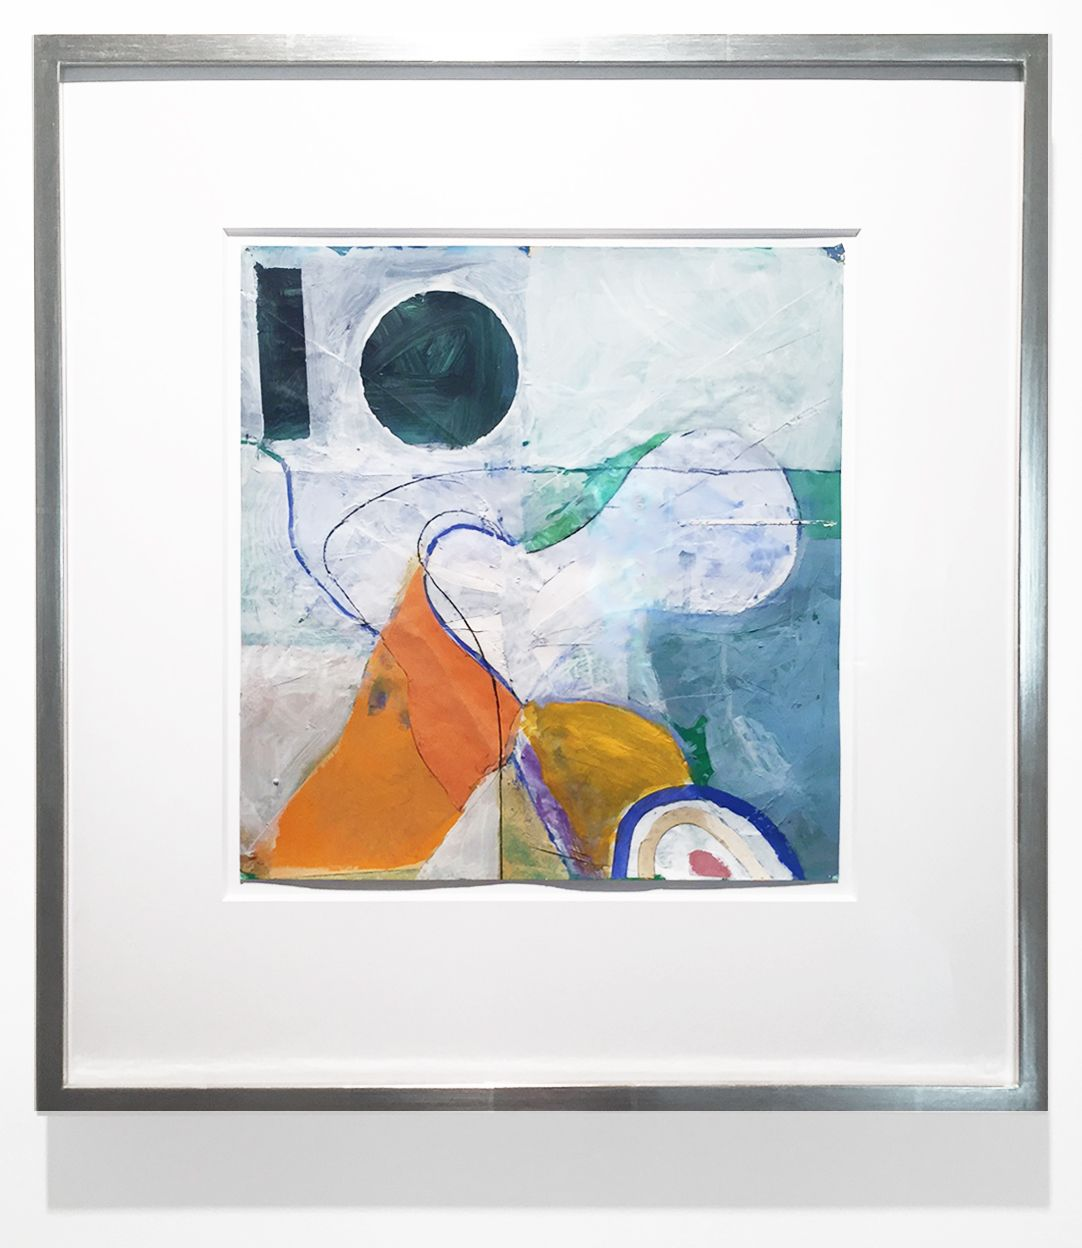 Richard Diebenkorn, Untitled, 1988-1993